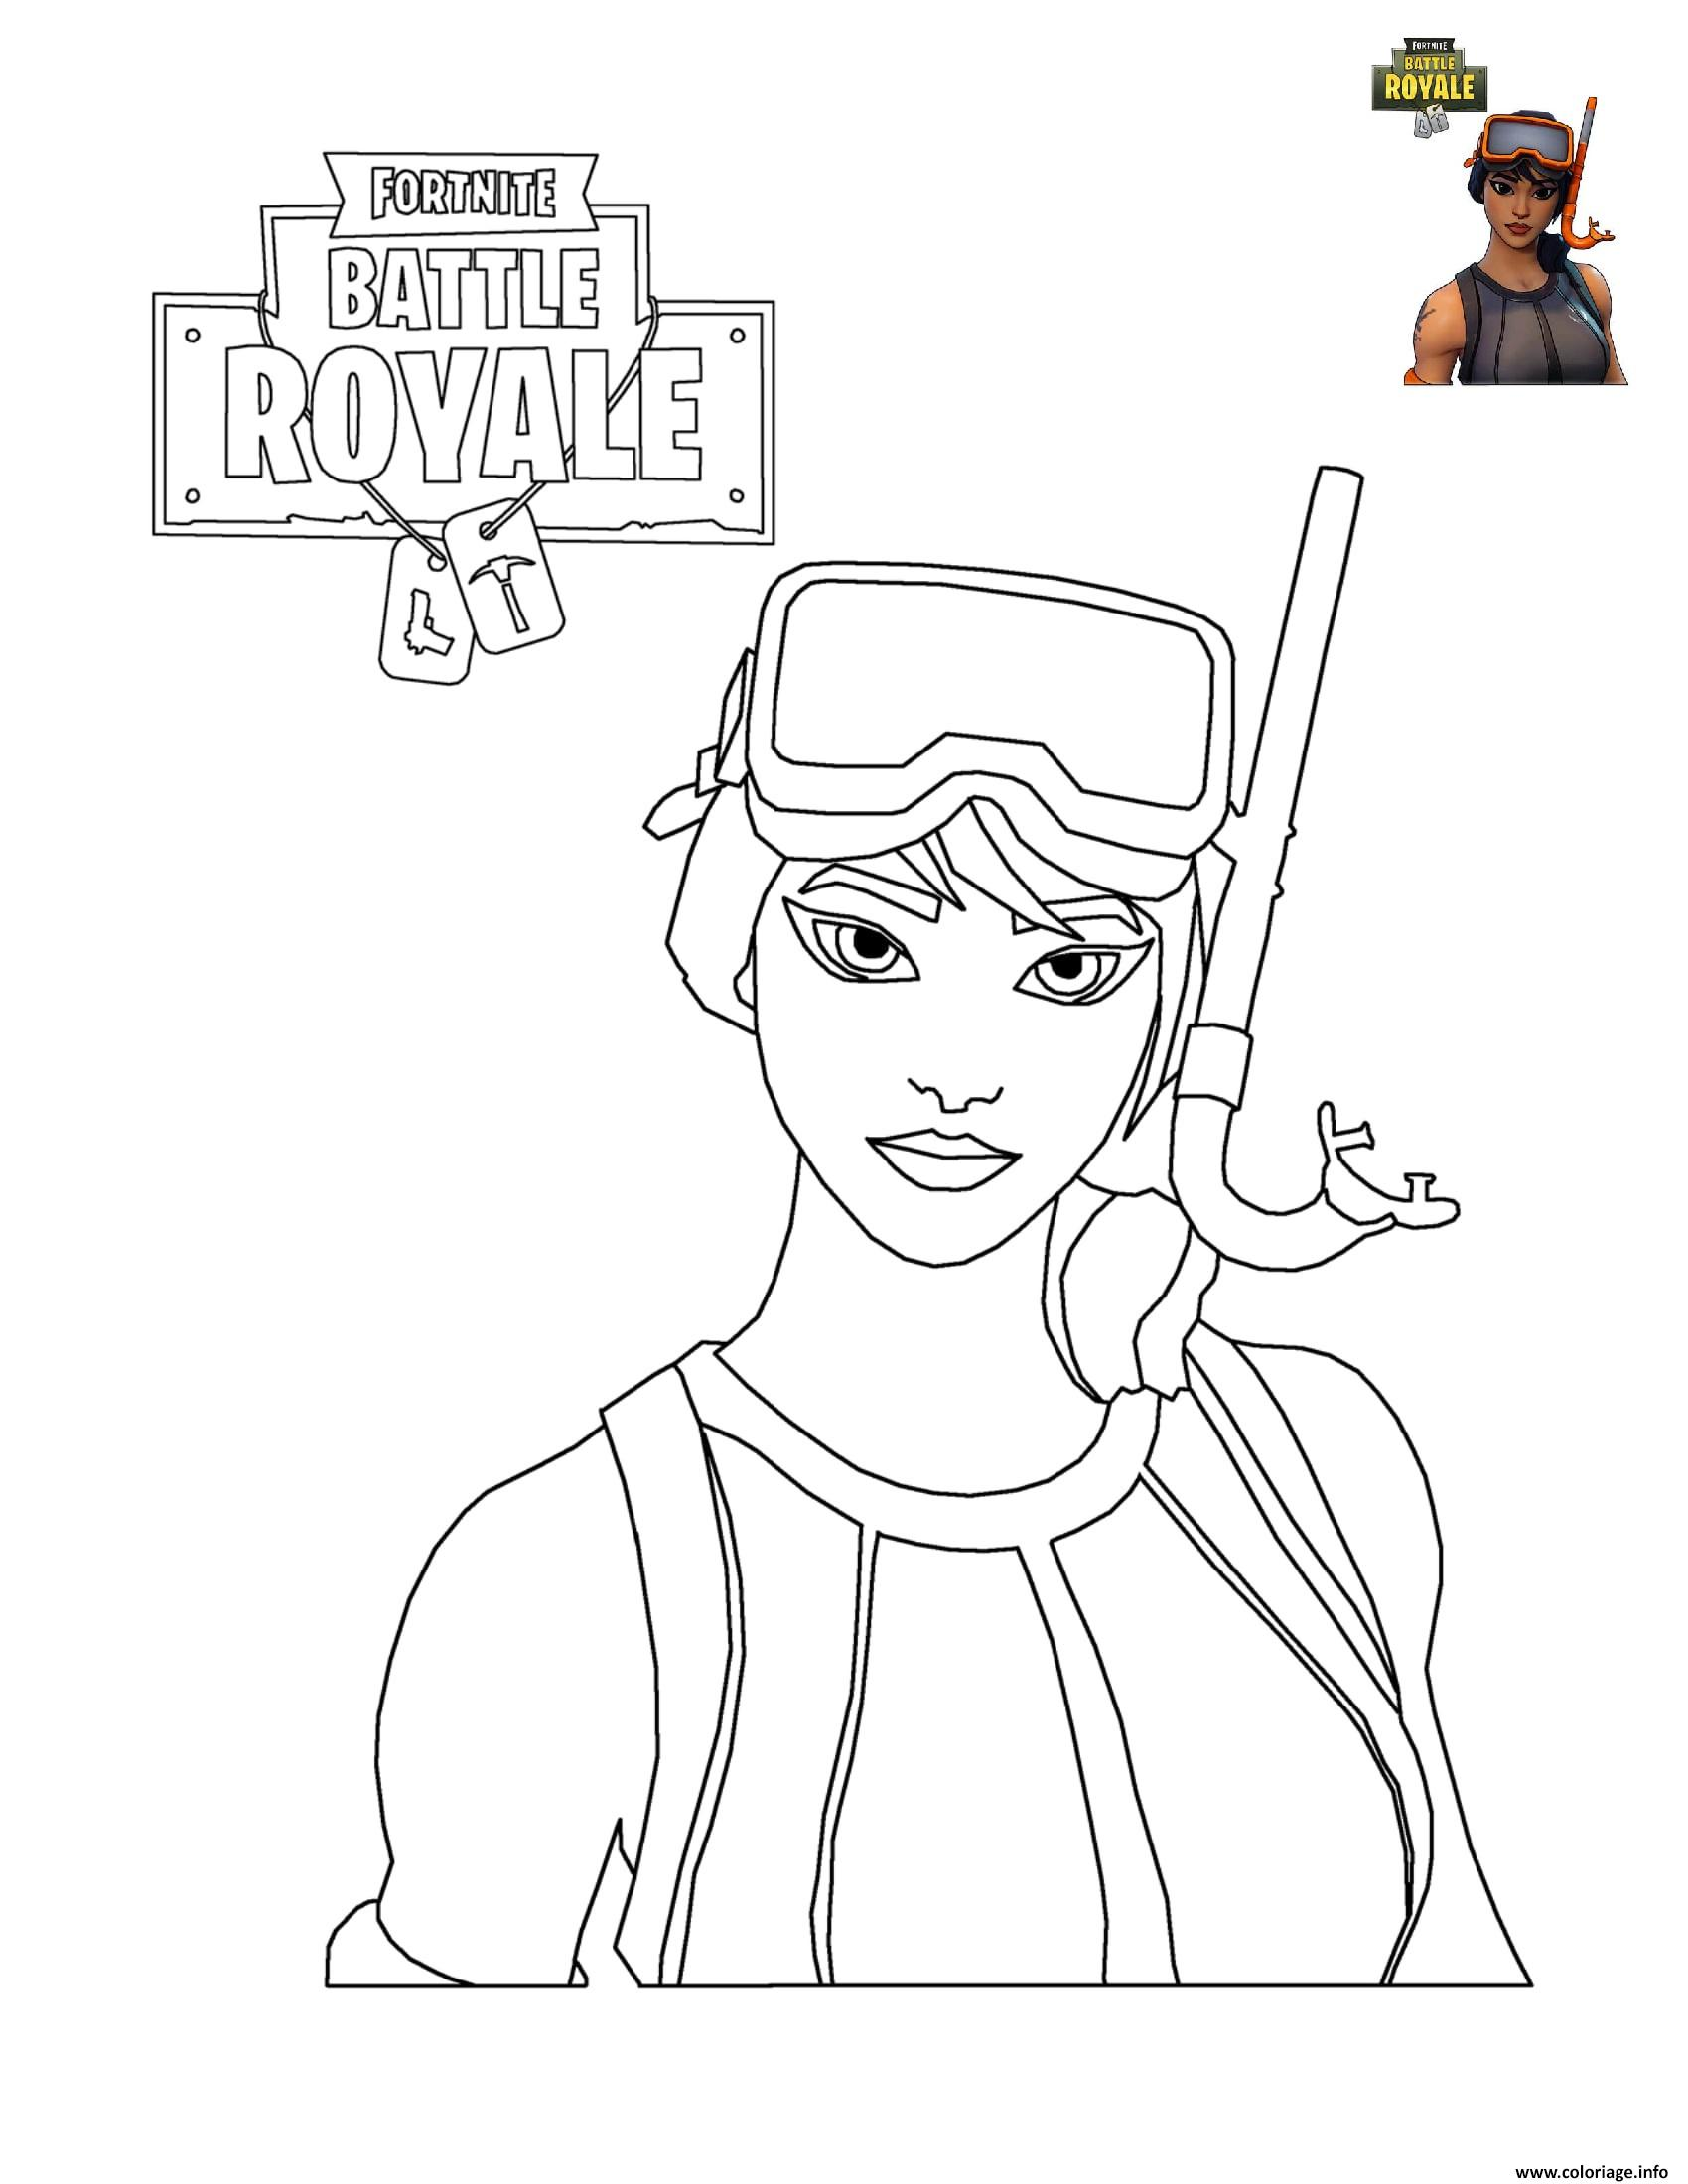 Coloriage A Imprimer Gratuit Fortnite.Coloriage Fortnite Battle Royale Personnage 7 Jecolorie Com